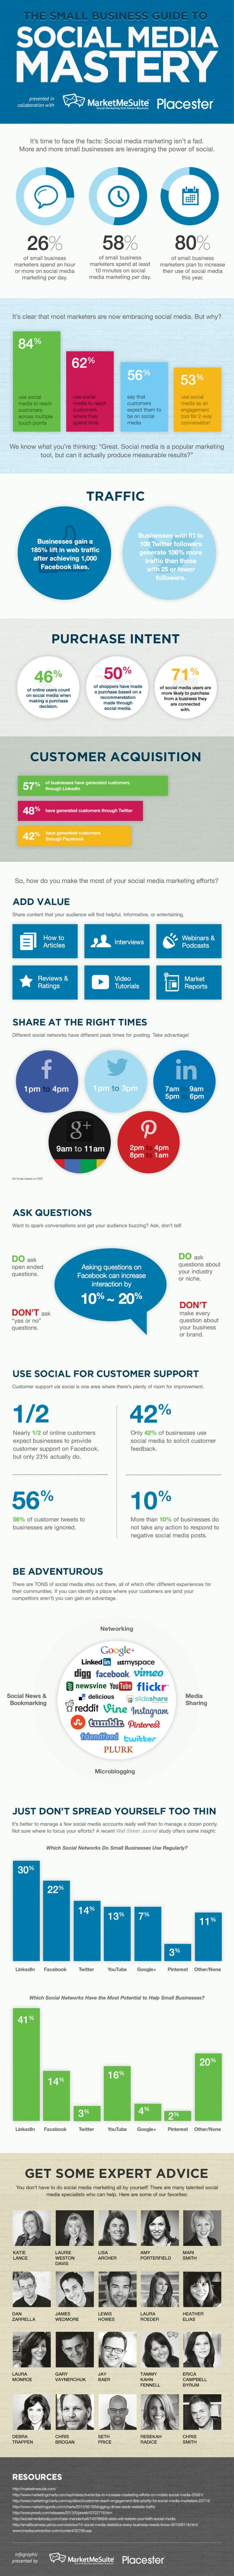 Small Business Guide to Social Media Mastery INFOGRAPHIC